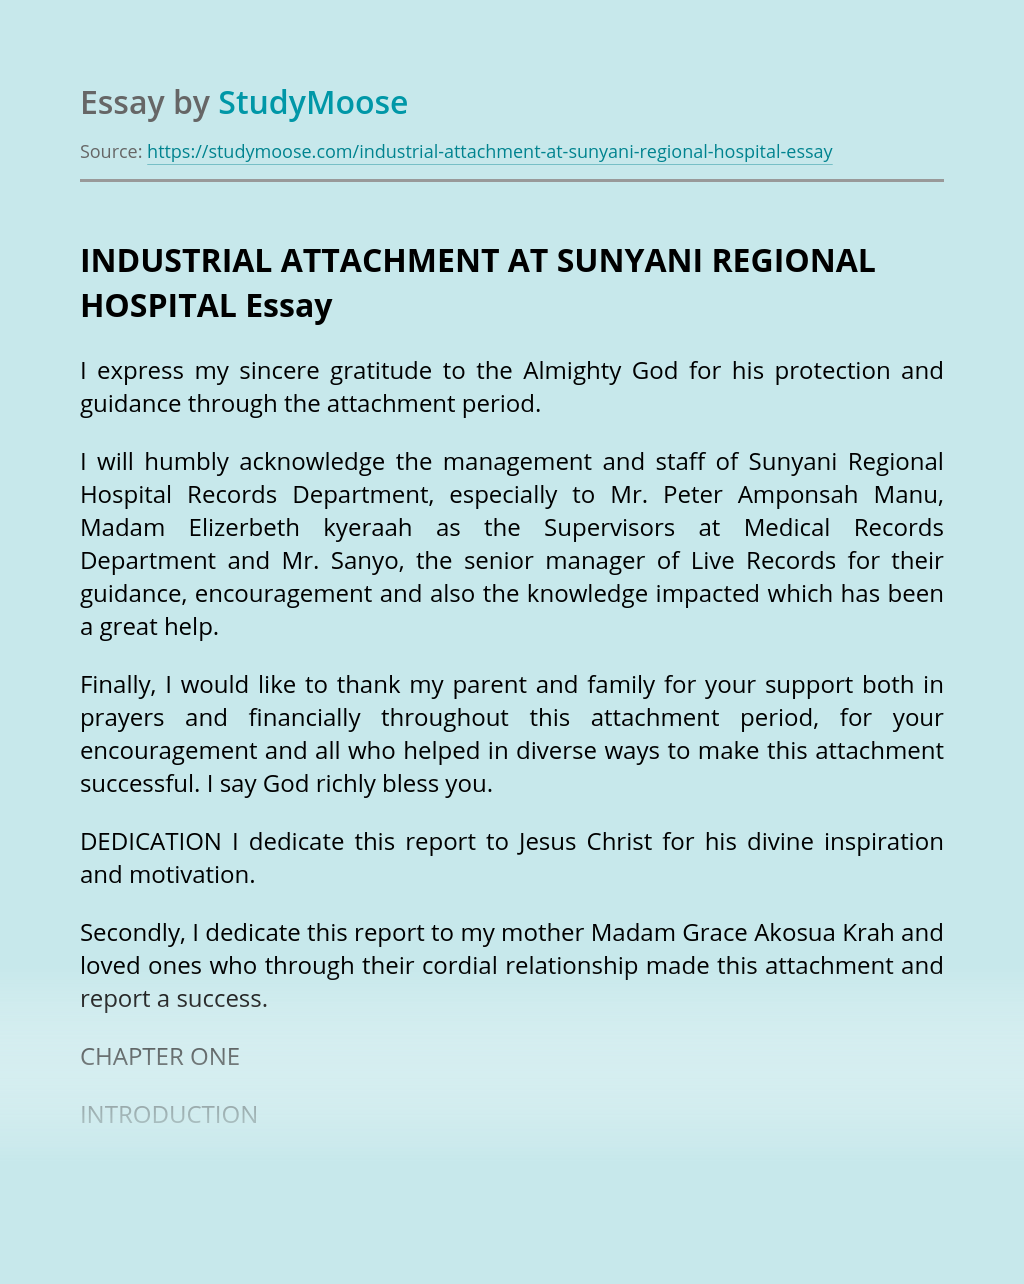 INDUSTRIAL ATTACHMENT AT SUNYANI REGIONAL HOSPITAL